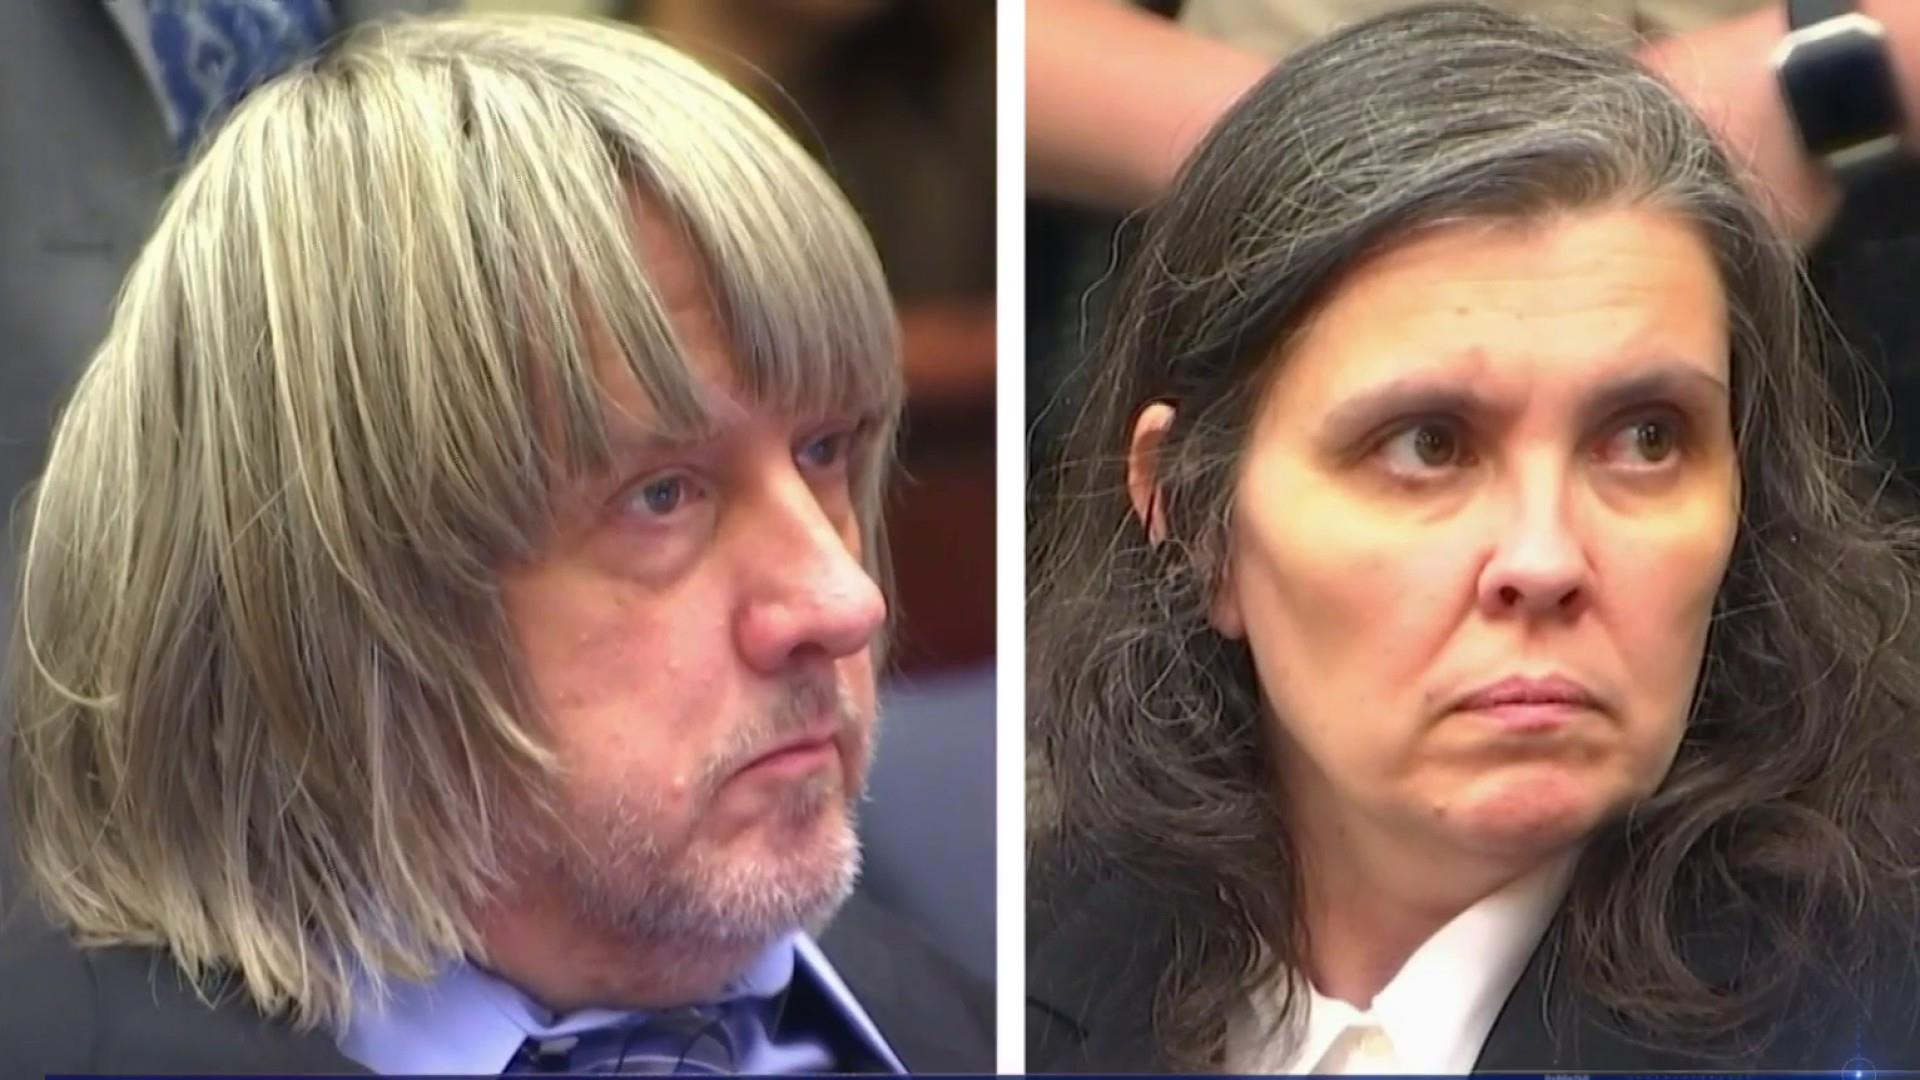 California House Of Horrors: Parents Could Face Life In Prison   NBC News